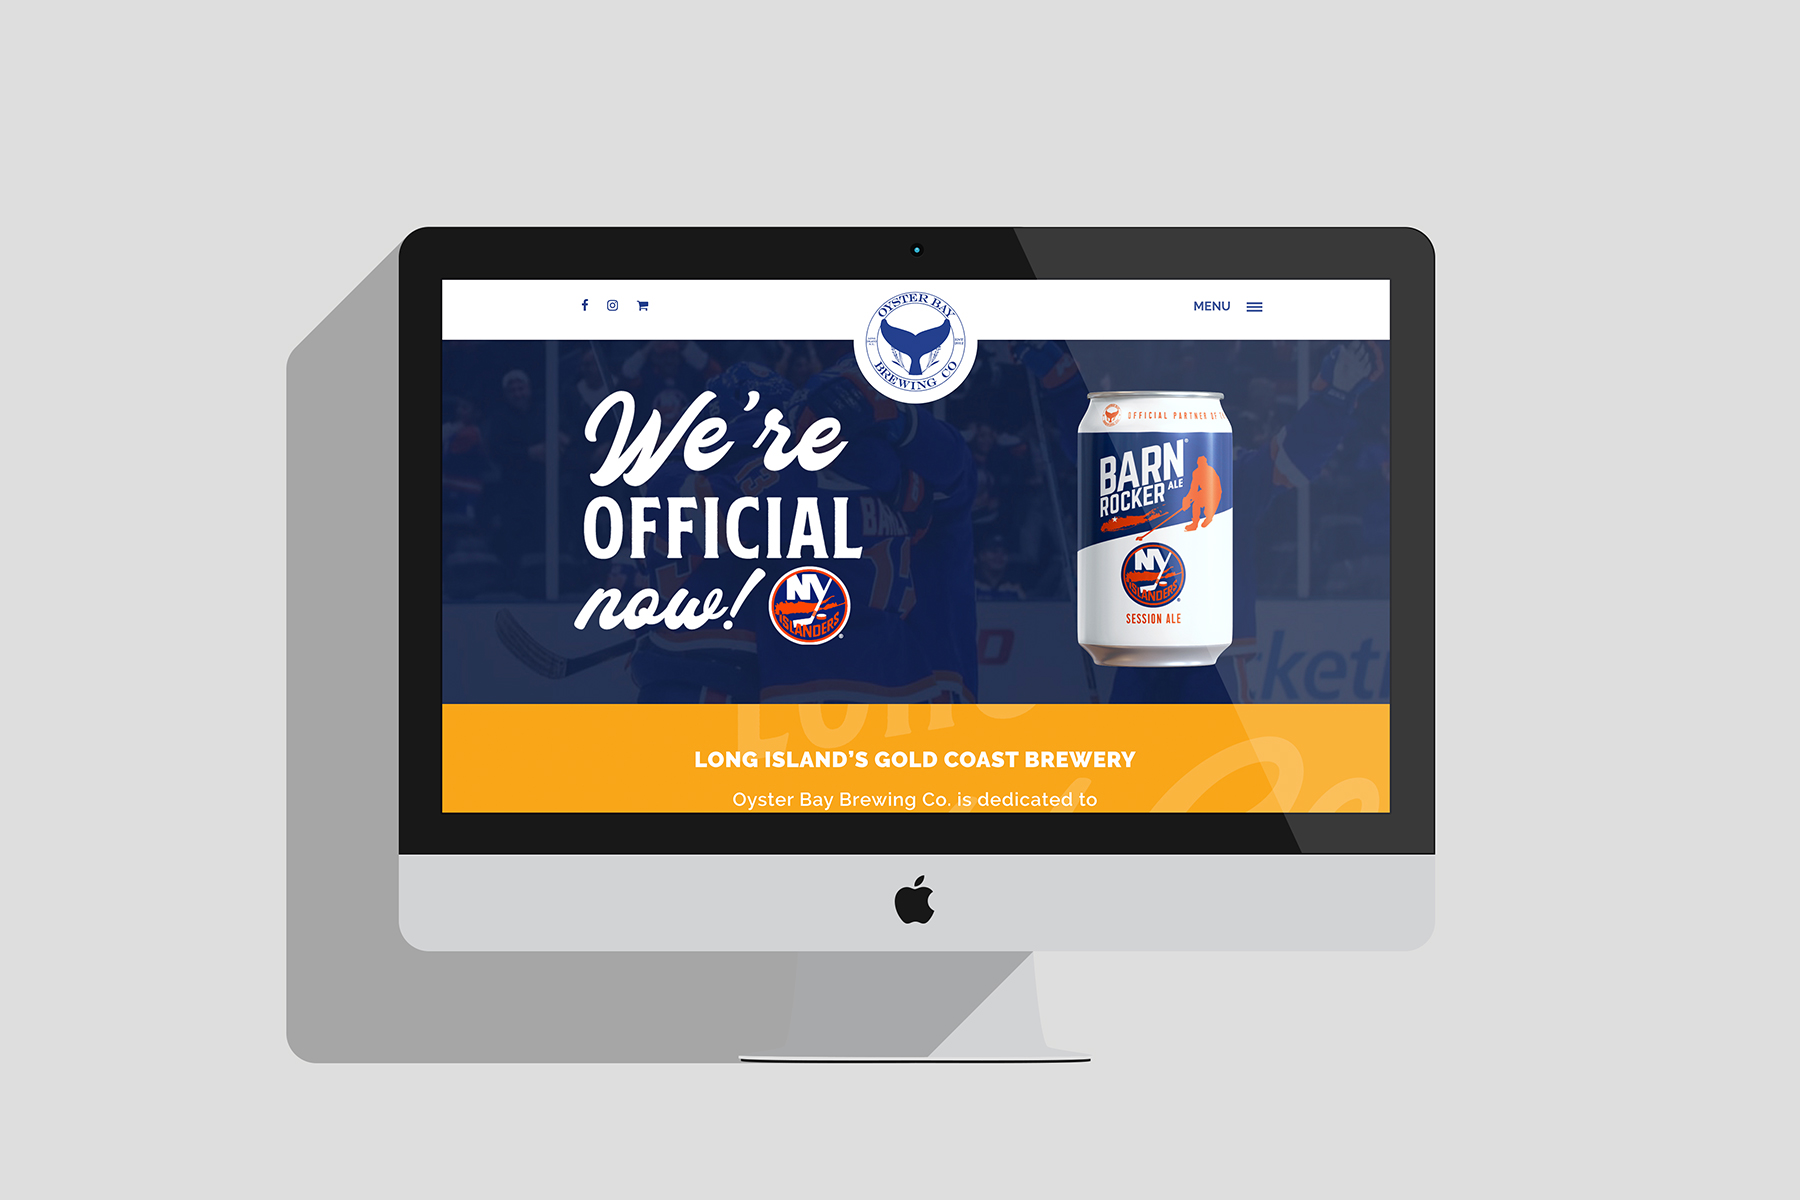 oyster bay brewing website design